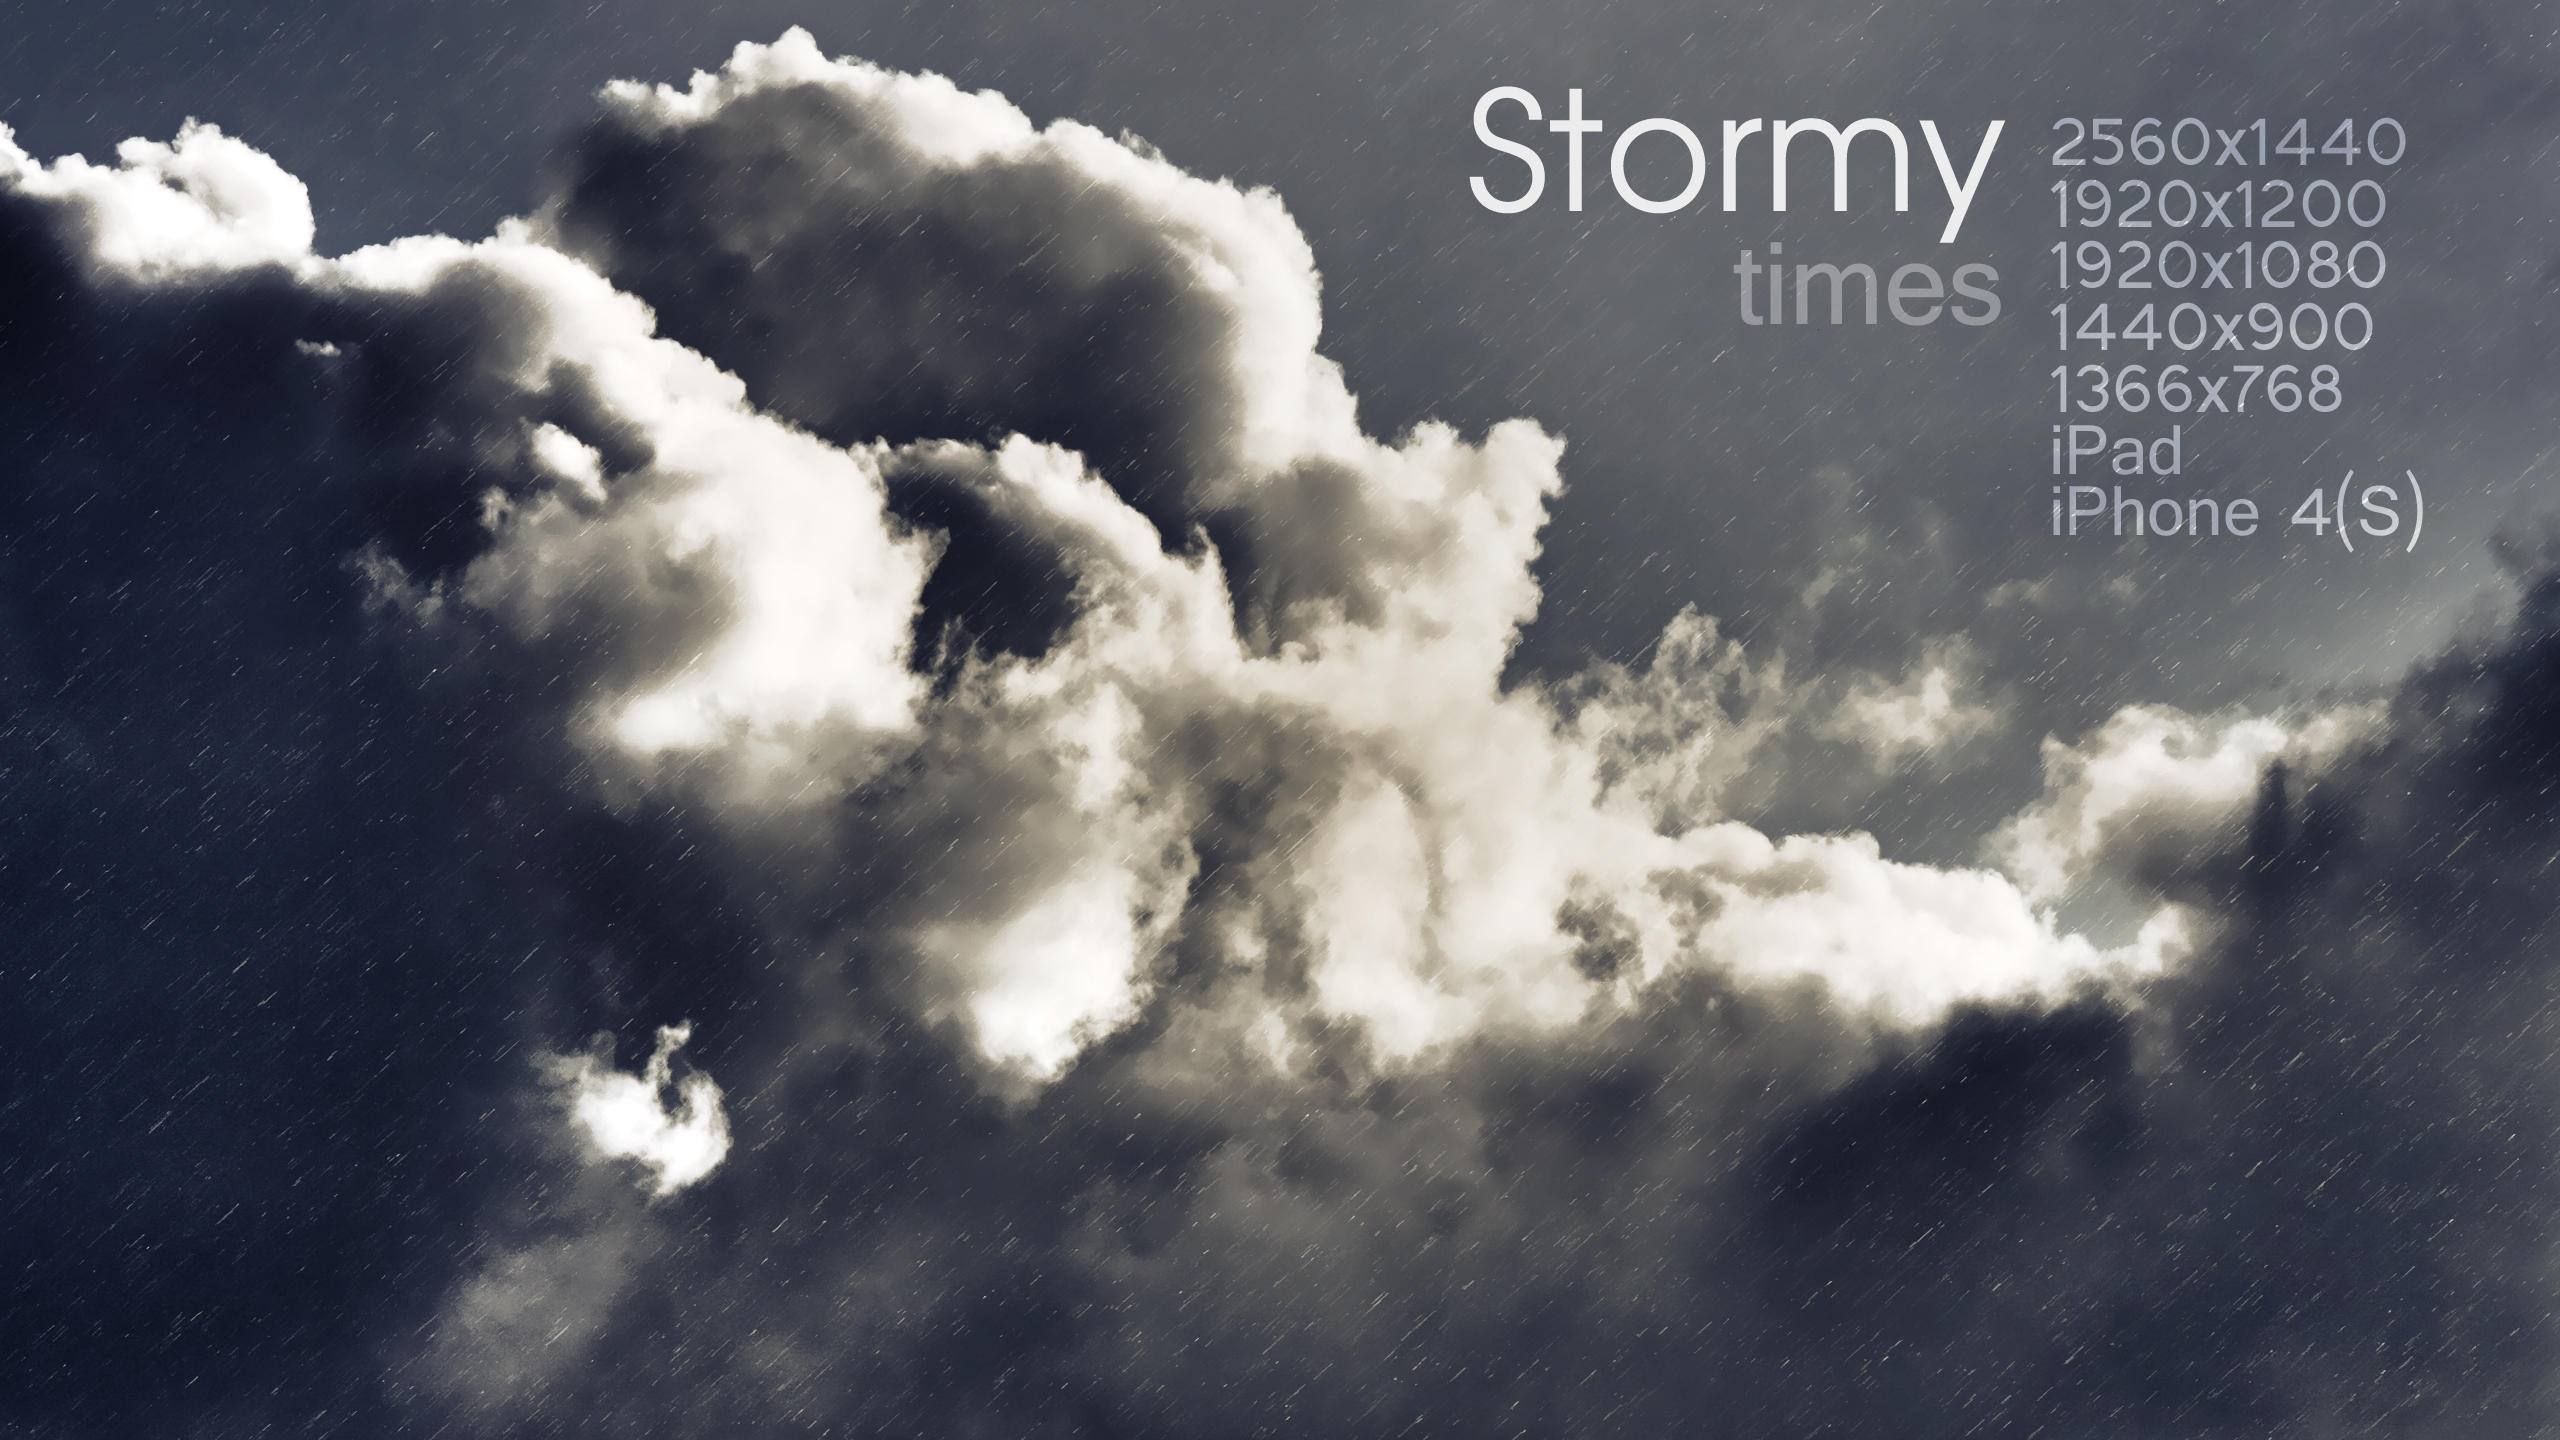 Stormy Times wallpaper by Martz90